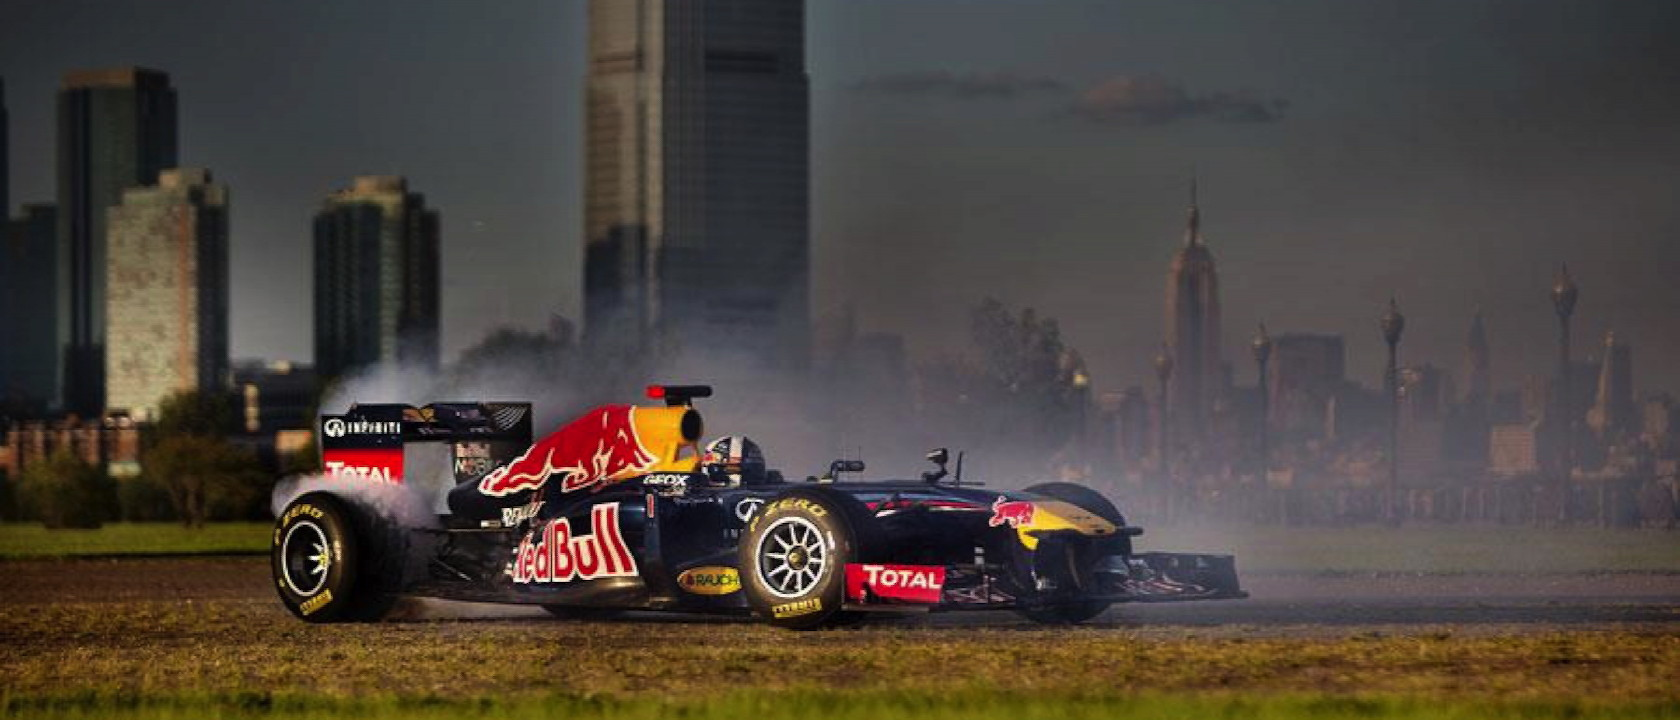 coulthard_nyc2012-1680x720